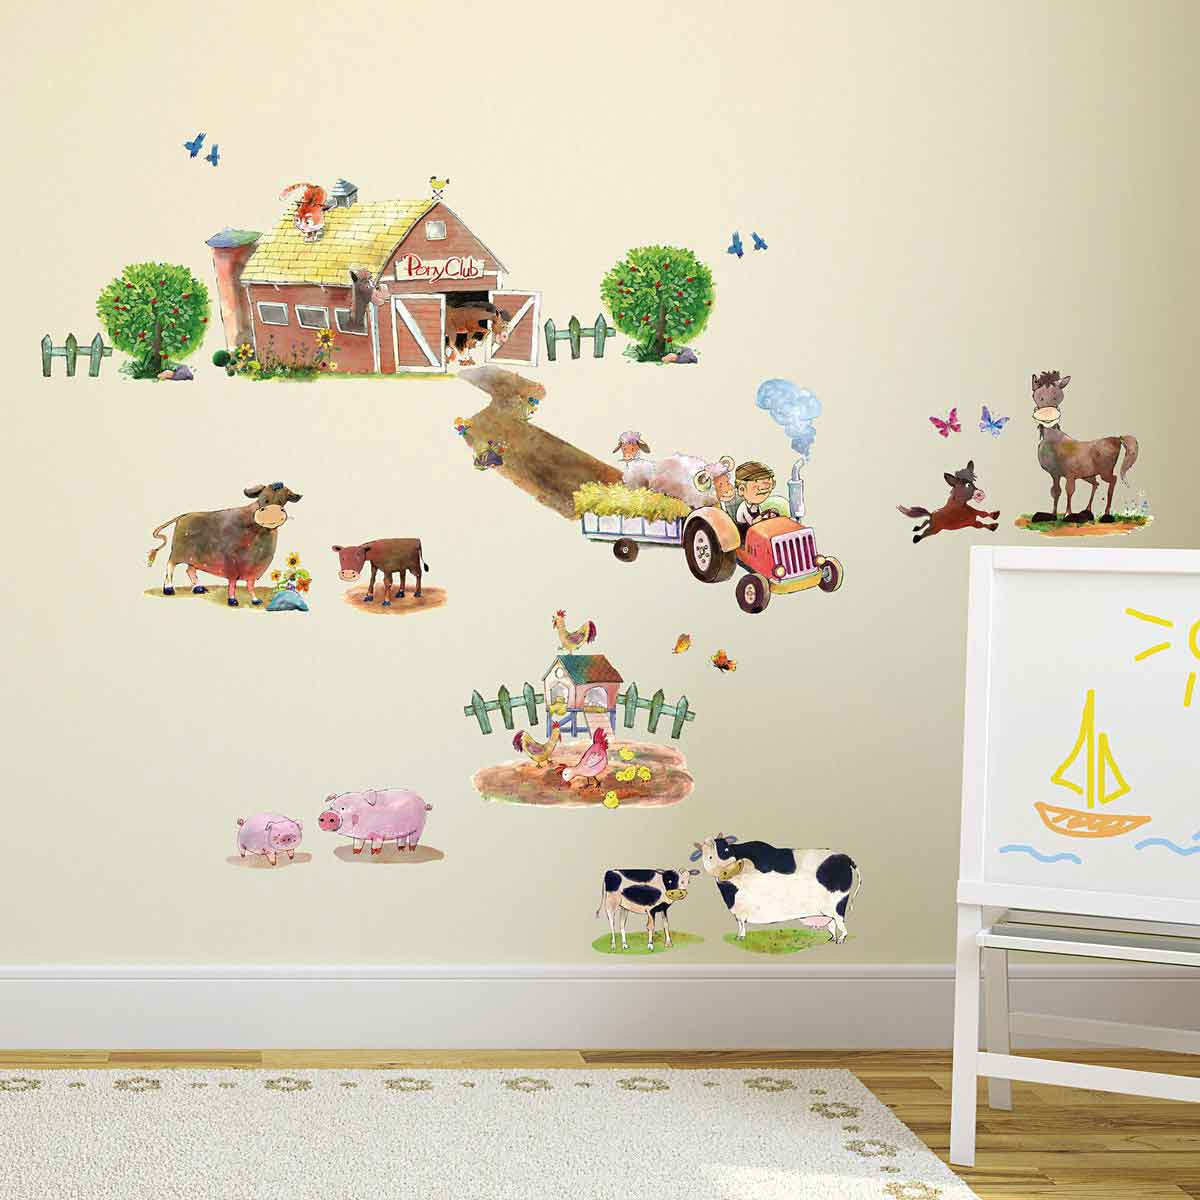 wandsticker ponyhof bauernhof tiere k he h hnerhof www 4. Black Bedroom Furniture Sets. Home Design Ideas